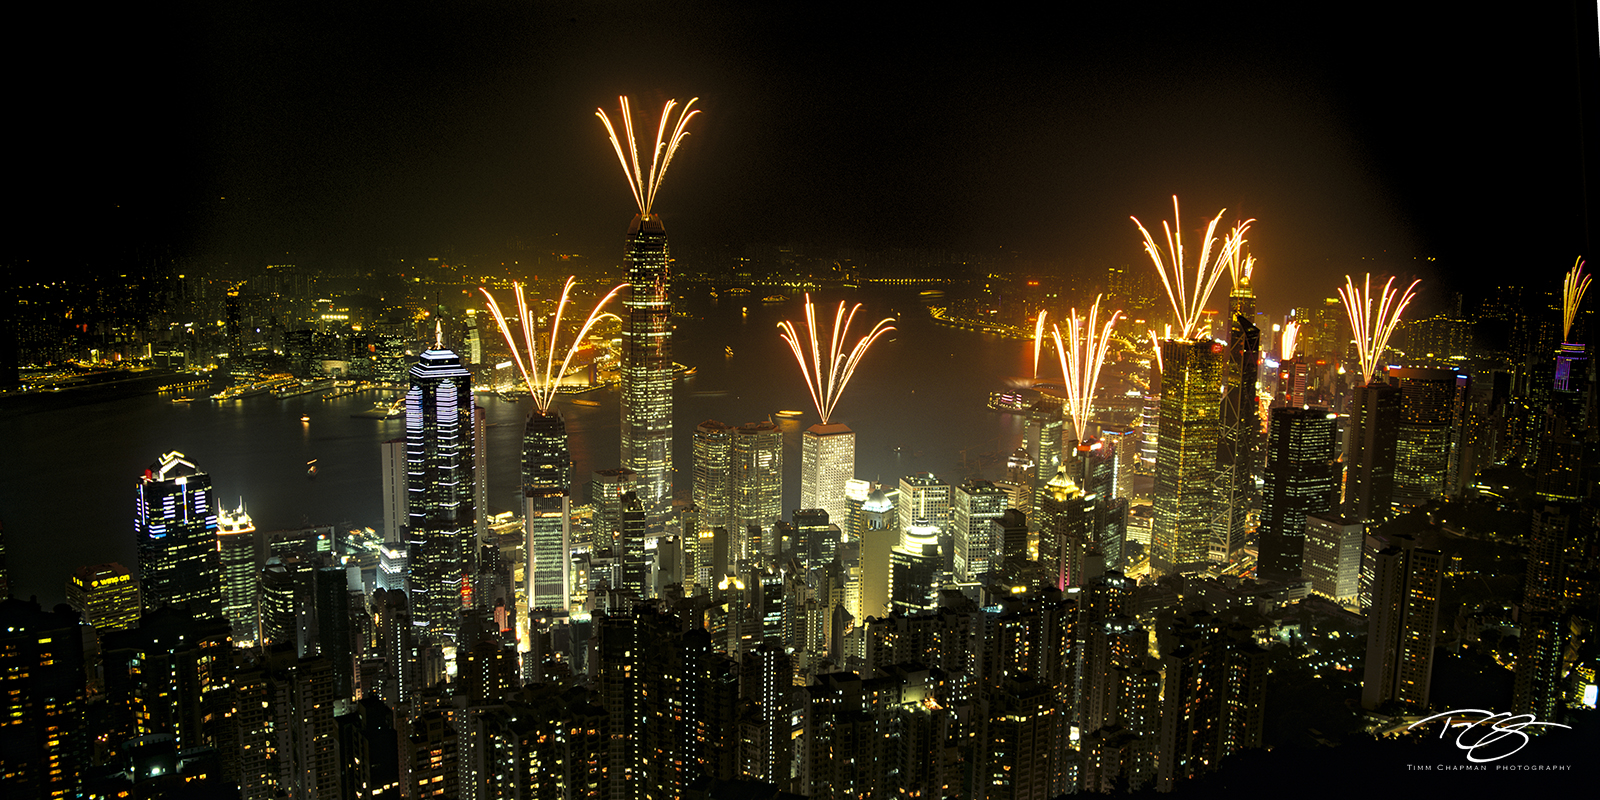 Victoria Peak, Hong Kong, Kowloon, Cityscape, Fireworks, China, Kowloon, Harbour, Bank of China, Aberdeen, Great Cities, Chinese, City, Skyline, Central, SAR, photo